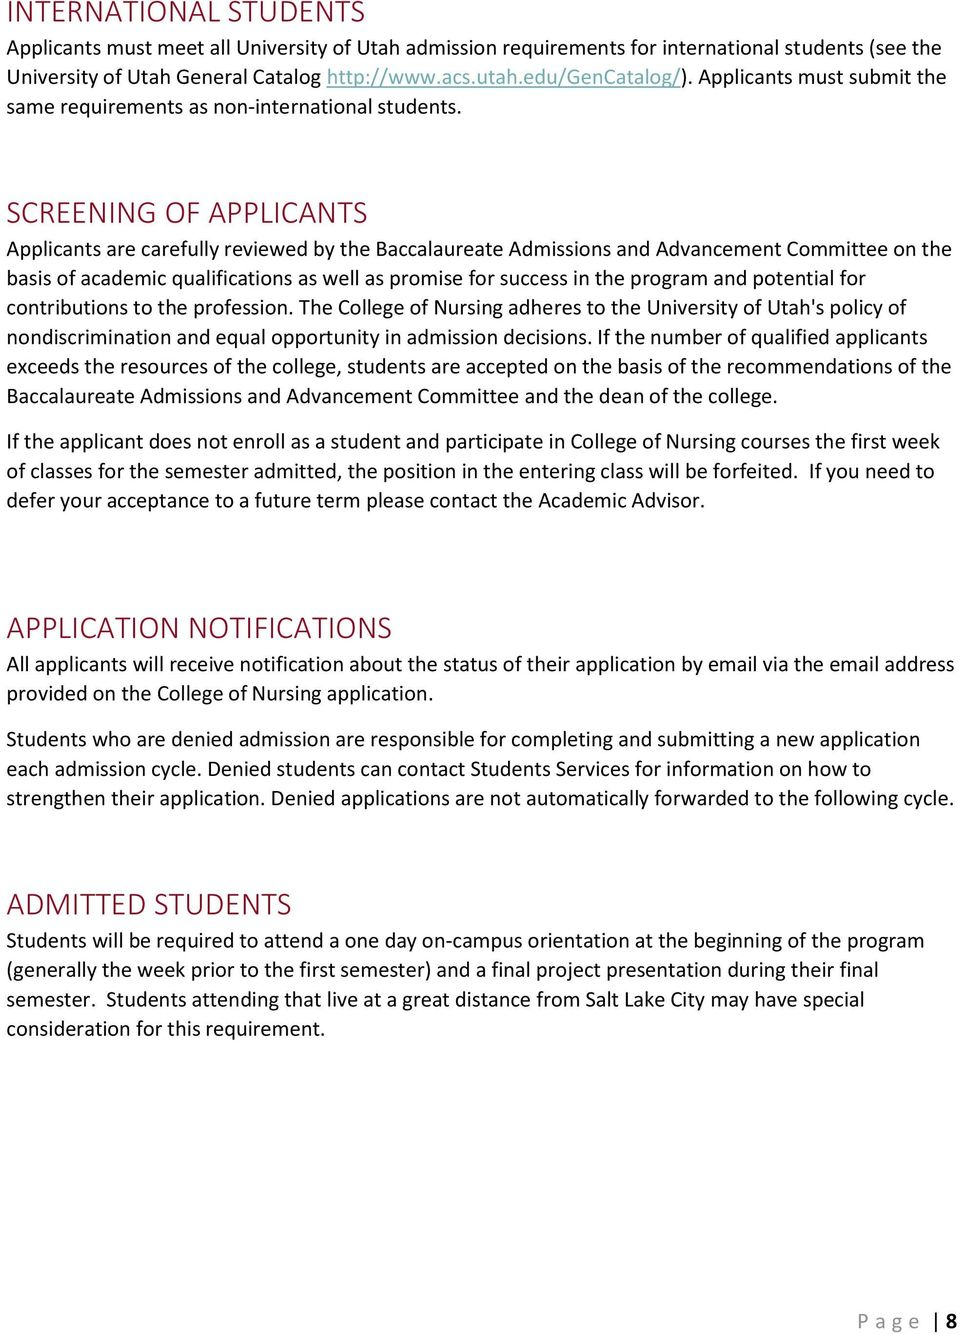 SCREENING OF APPLICANTS Applicants are carefully reviewed by the Baccalaureate Admissions and Advancement Committee on the basis of academic qualifications as well as promise for success in the